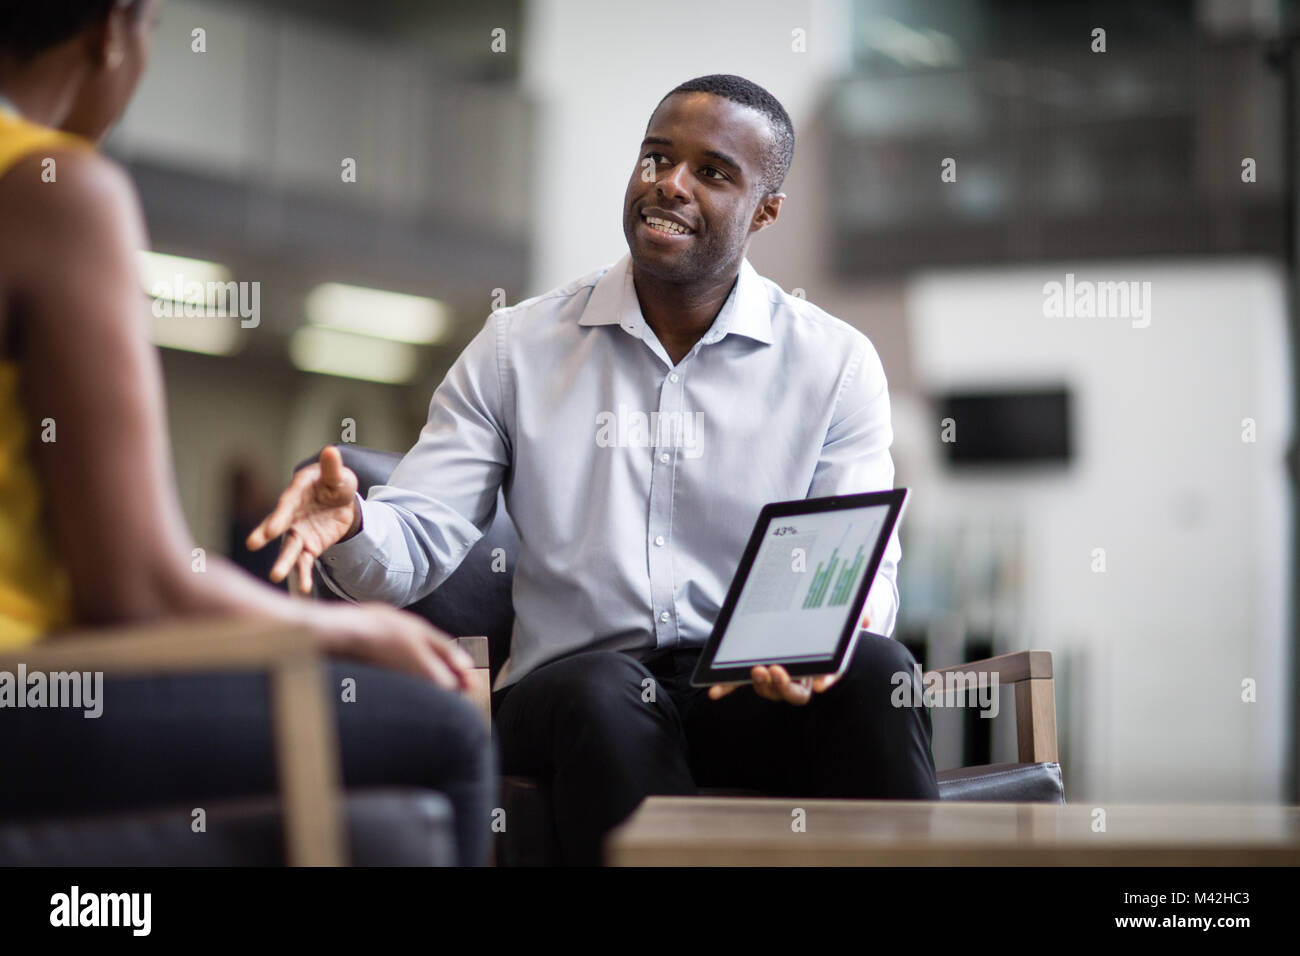 Business meeting in office atrium reception - Stock Image